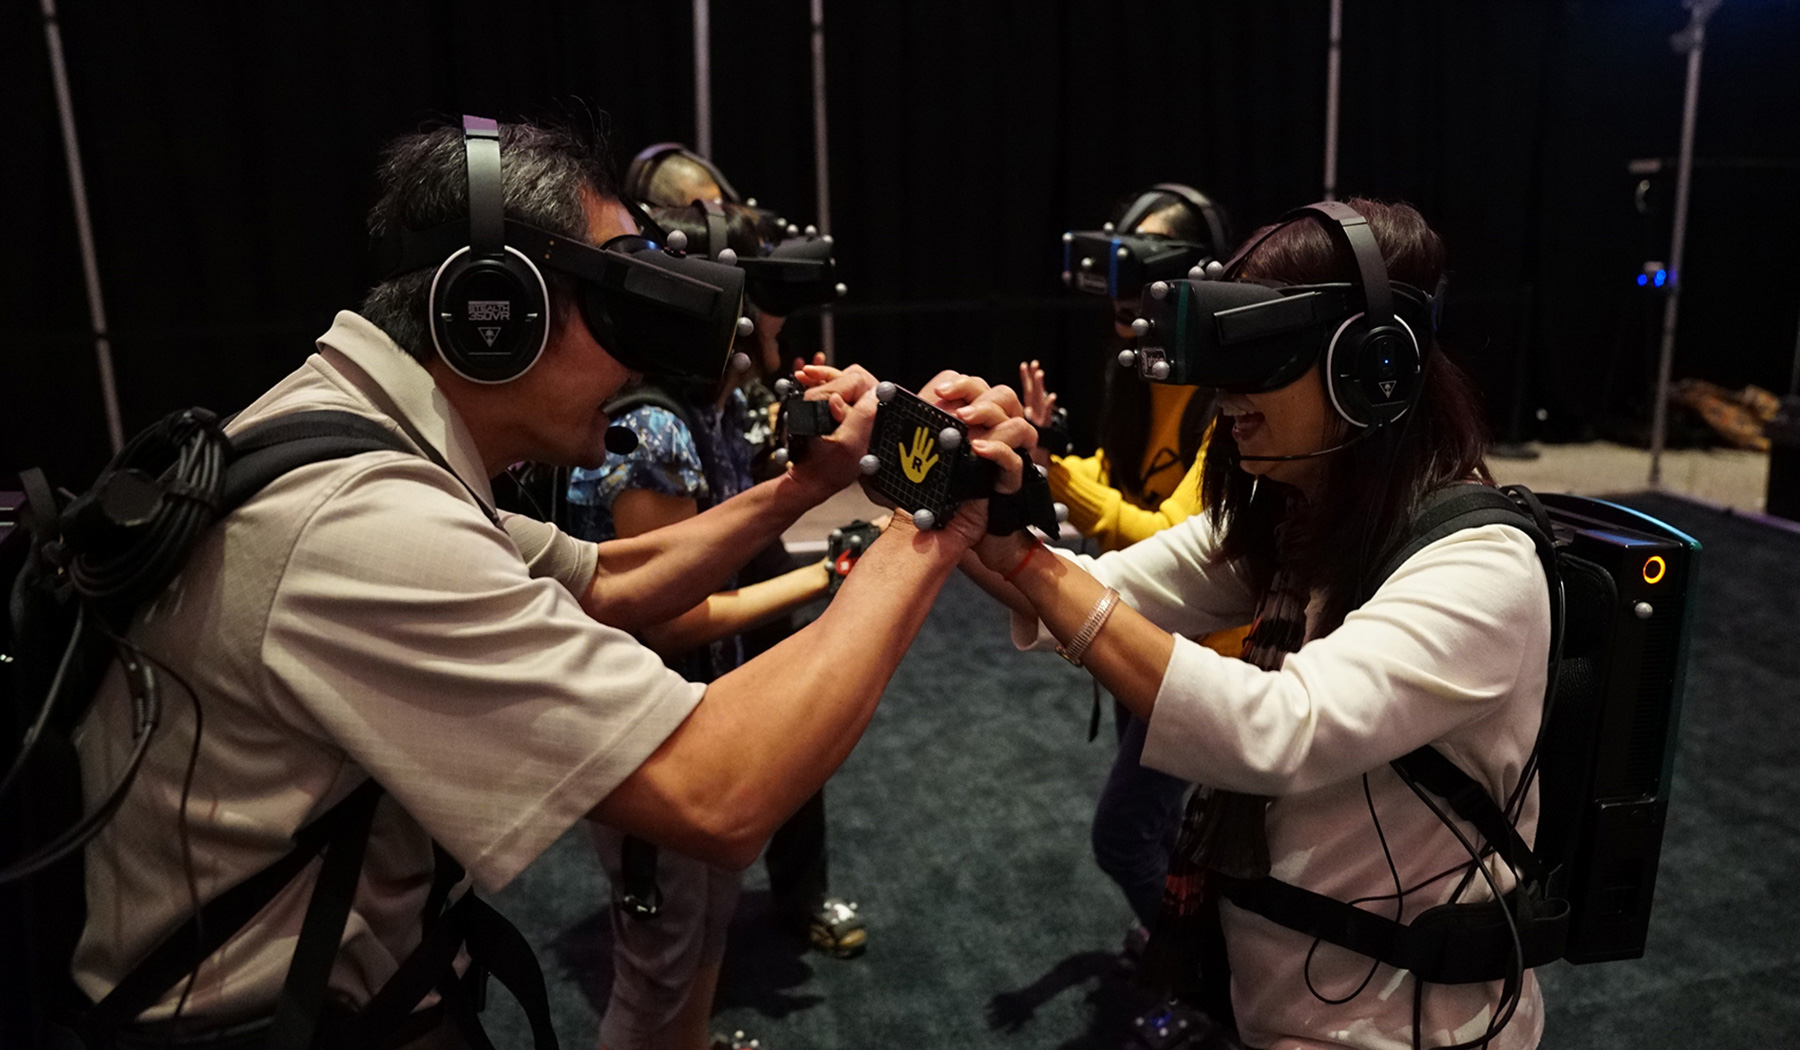 Virtual Reality Gets Social: At Sundance, Proof that the Future of VR is Shared Experiences